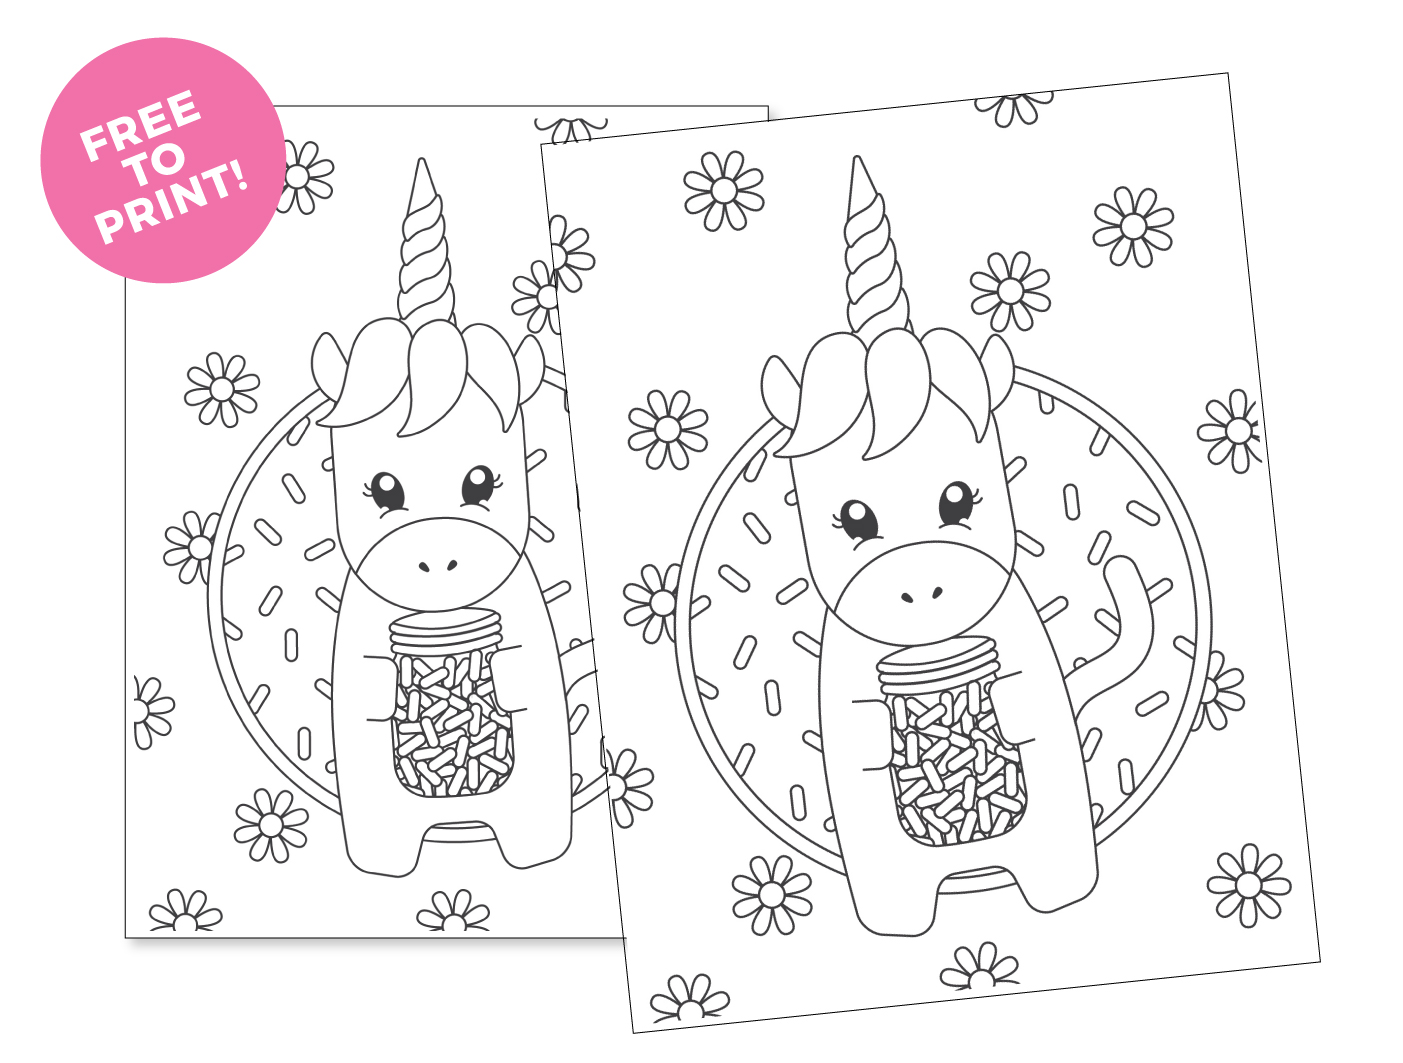 printable unicorn coloring page design eat repeat